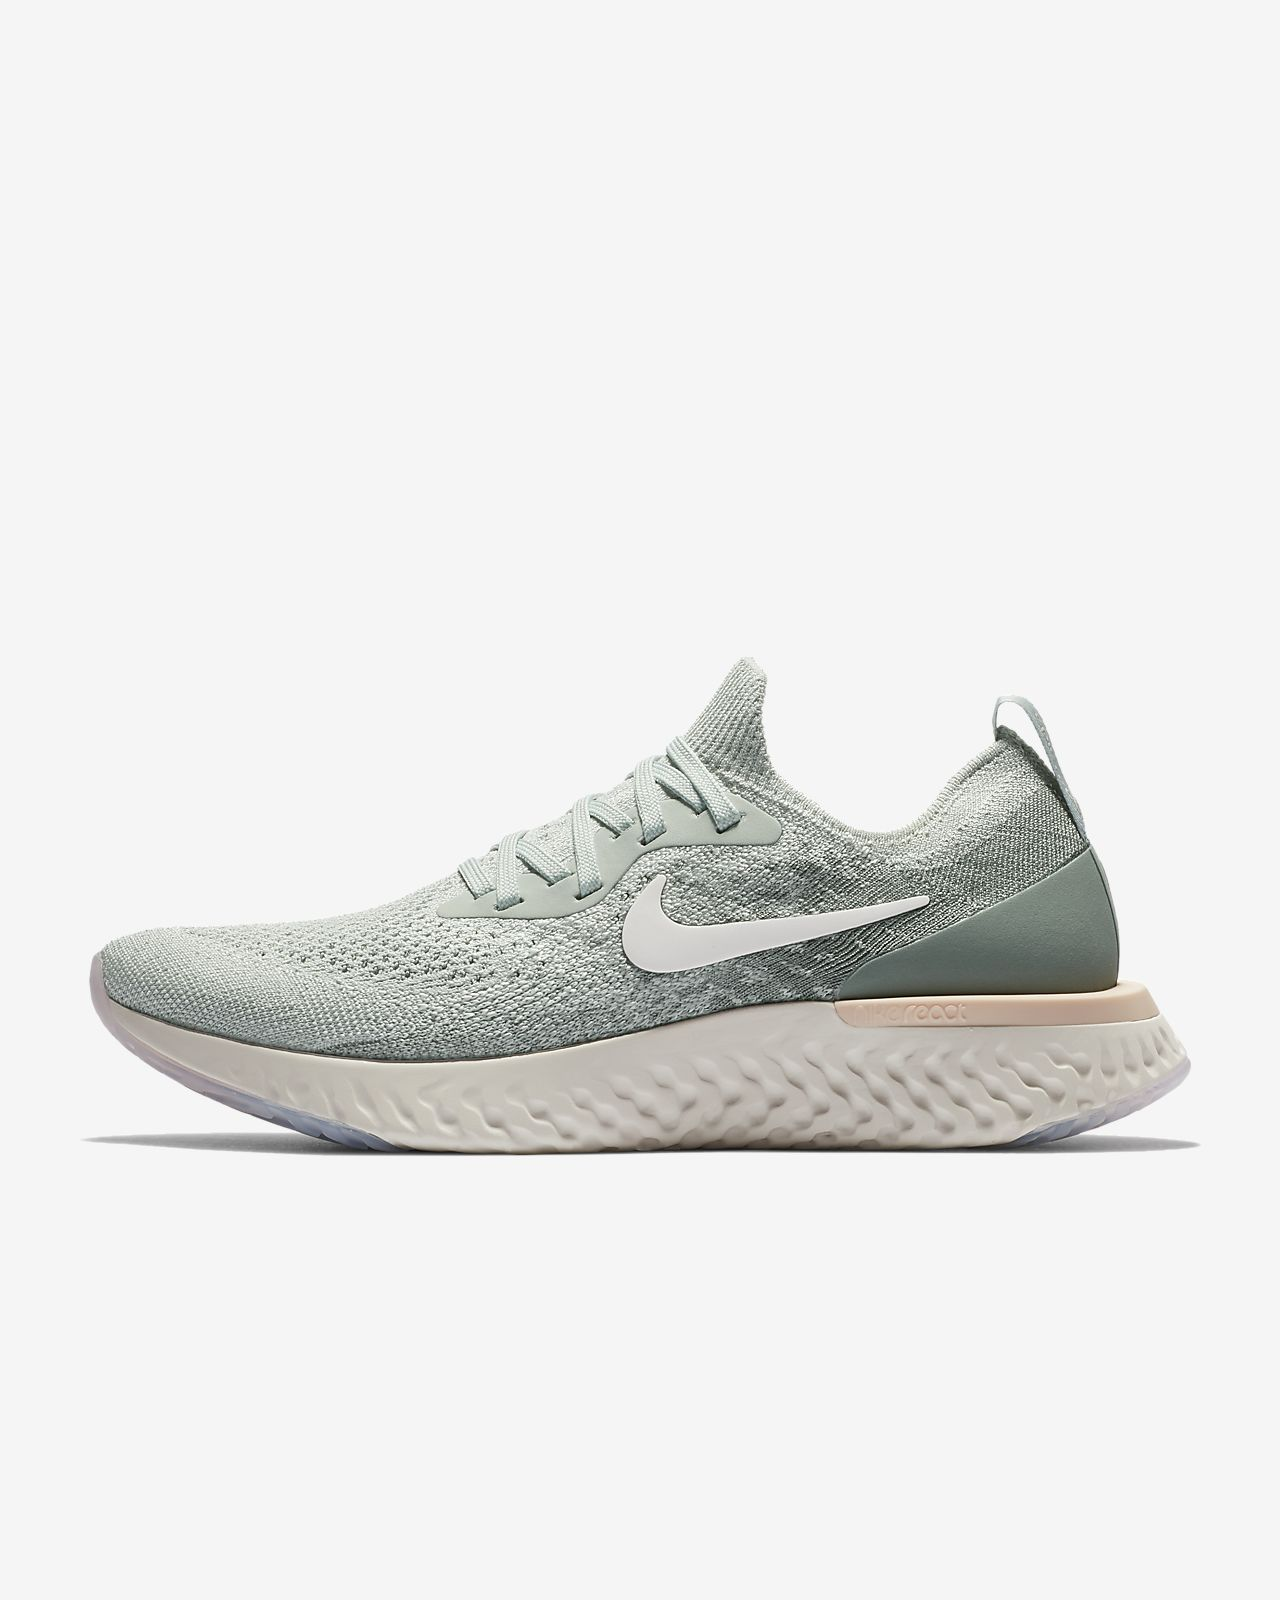 0553793340c6a ... reduced nike epic react flyknit womens running shoe 8ab84 f5fca